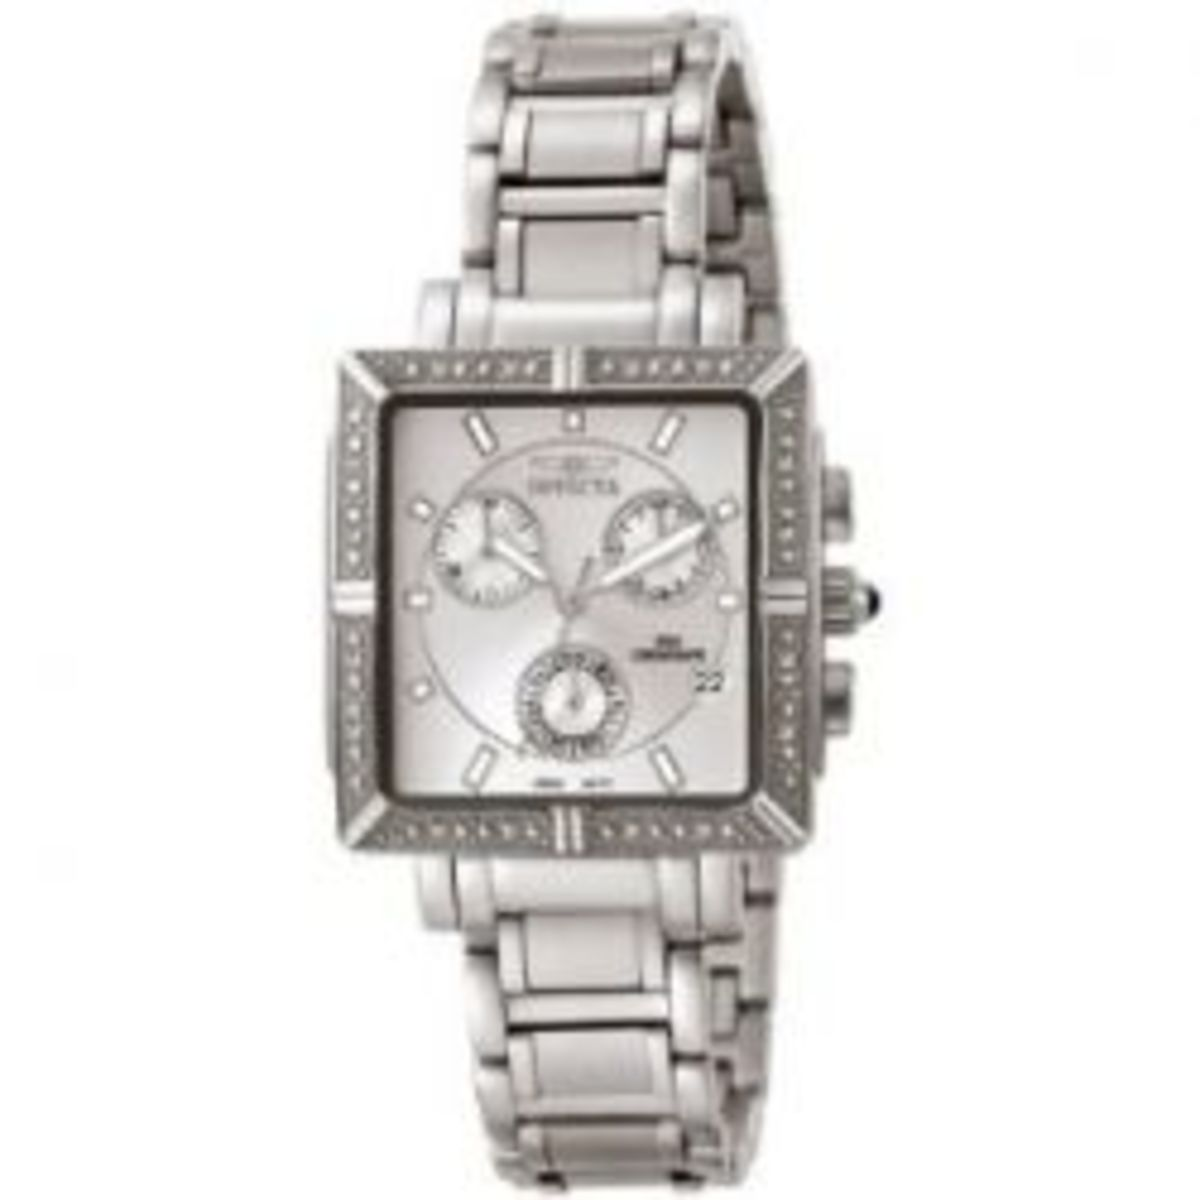 Invicta Women's Square Angel Diamond Stainless Steel Chronograph Watch